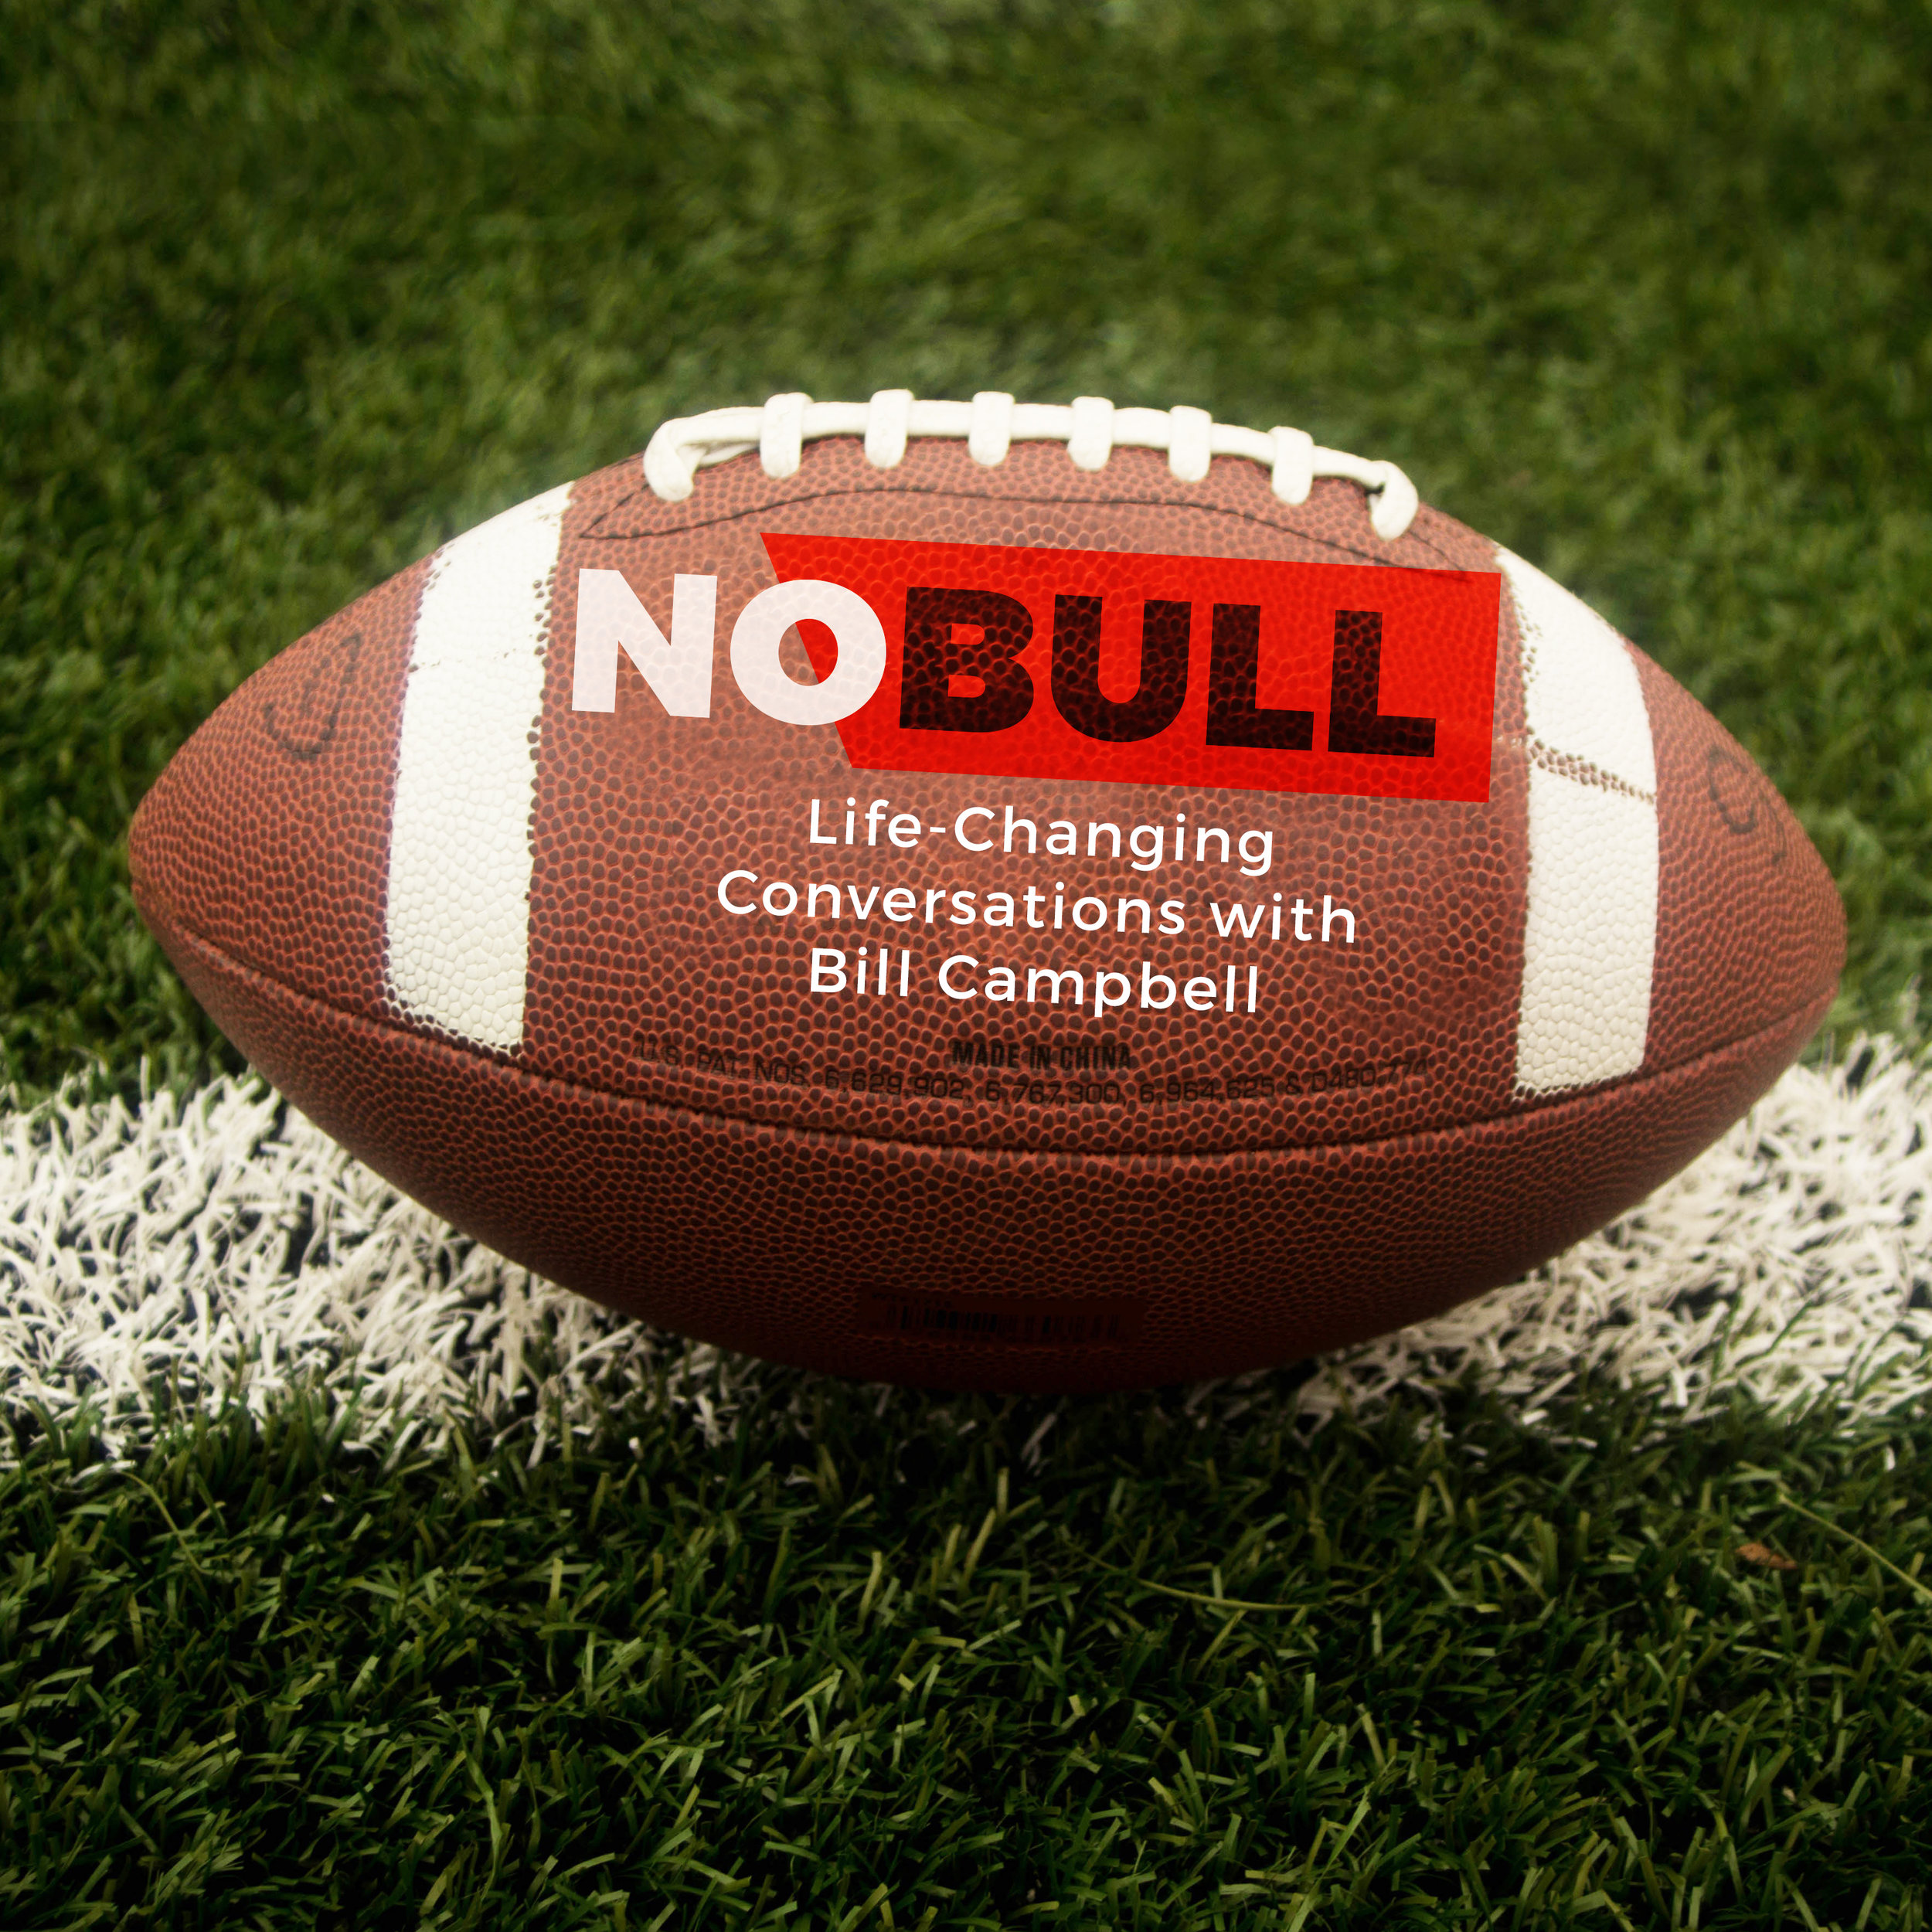 NoBull-Football-Podcast-Cover-3000x3000_v3.jpg